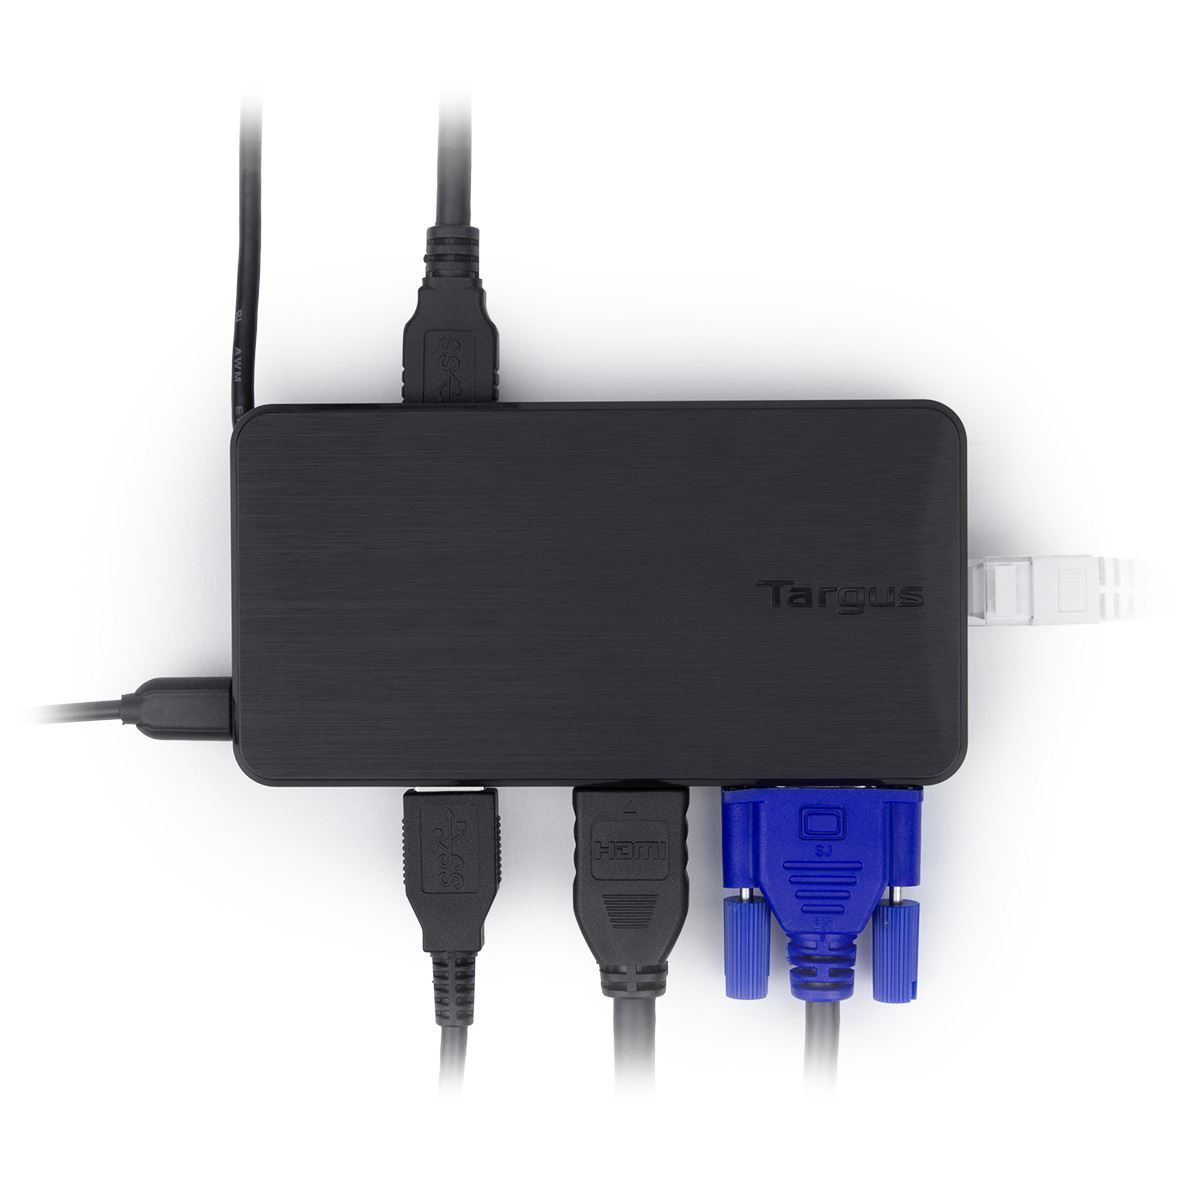 how do you hook your smartphone up to your tv Product - lightning digital av adapter hdmi connector connecting for iphone product - vga to hdmi output, costech hd 1080p tv av hdtv video cable product - insten 10' hdmi to mini hdmi cable type a to type c, m/m, 10ft ablegrid hdmi male to 2 hdmi female 1 in 2 out splitter cable converter adapter.